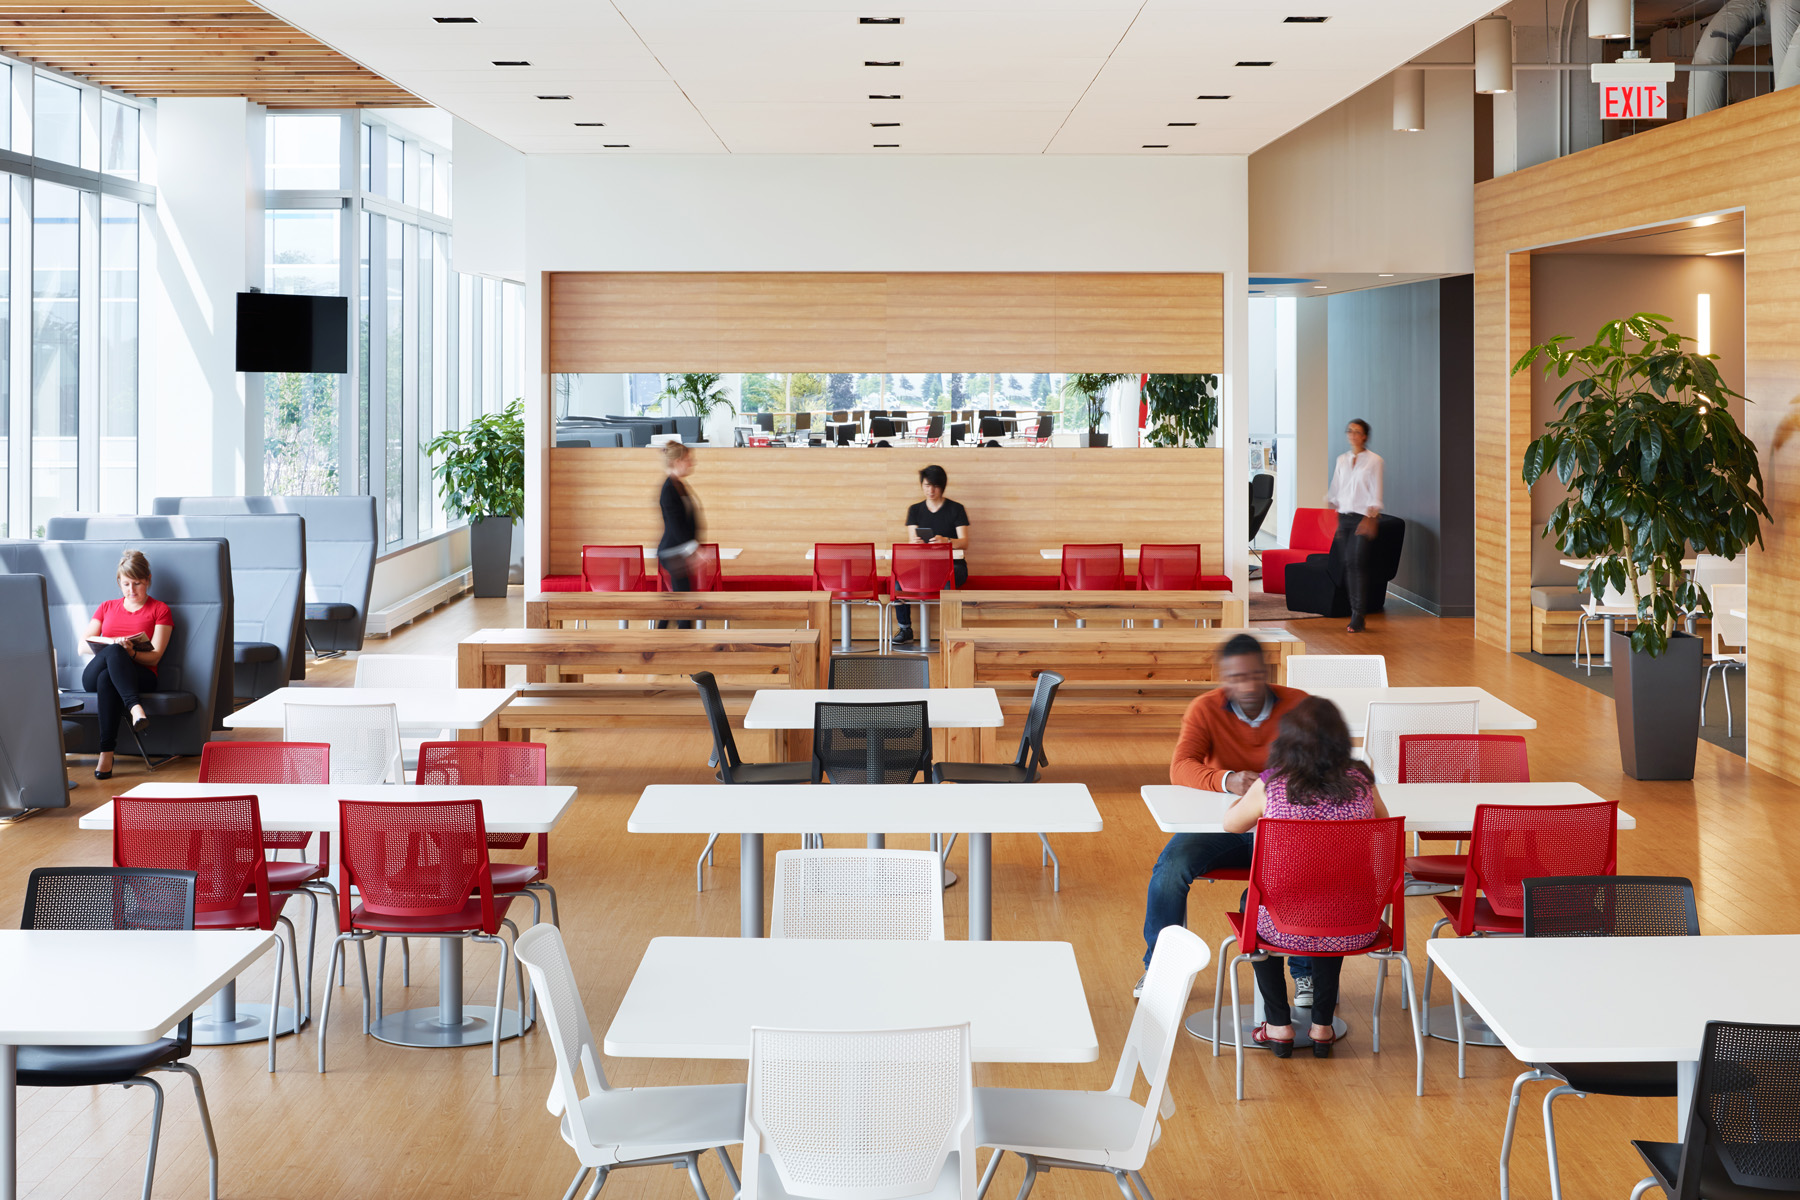 TJX cafeteria with natural wood floors and walls, white and red tables and chairs, and dark grey booths